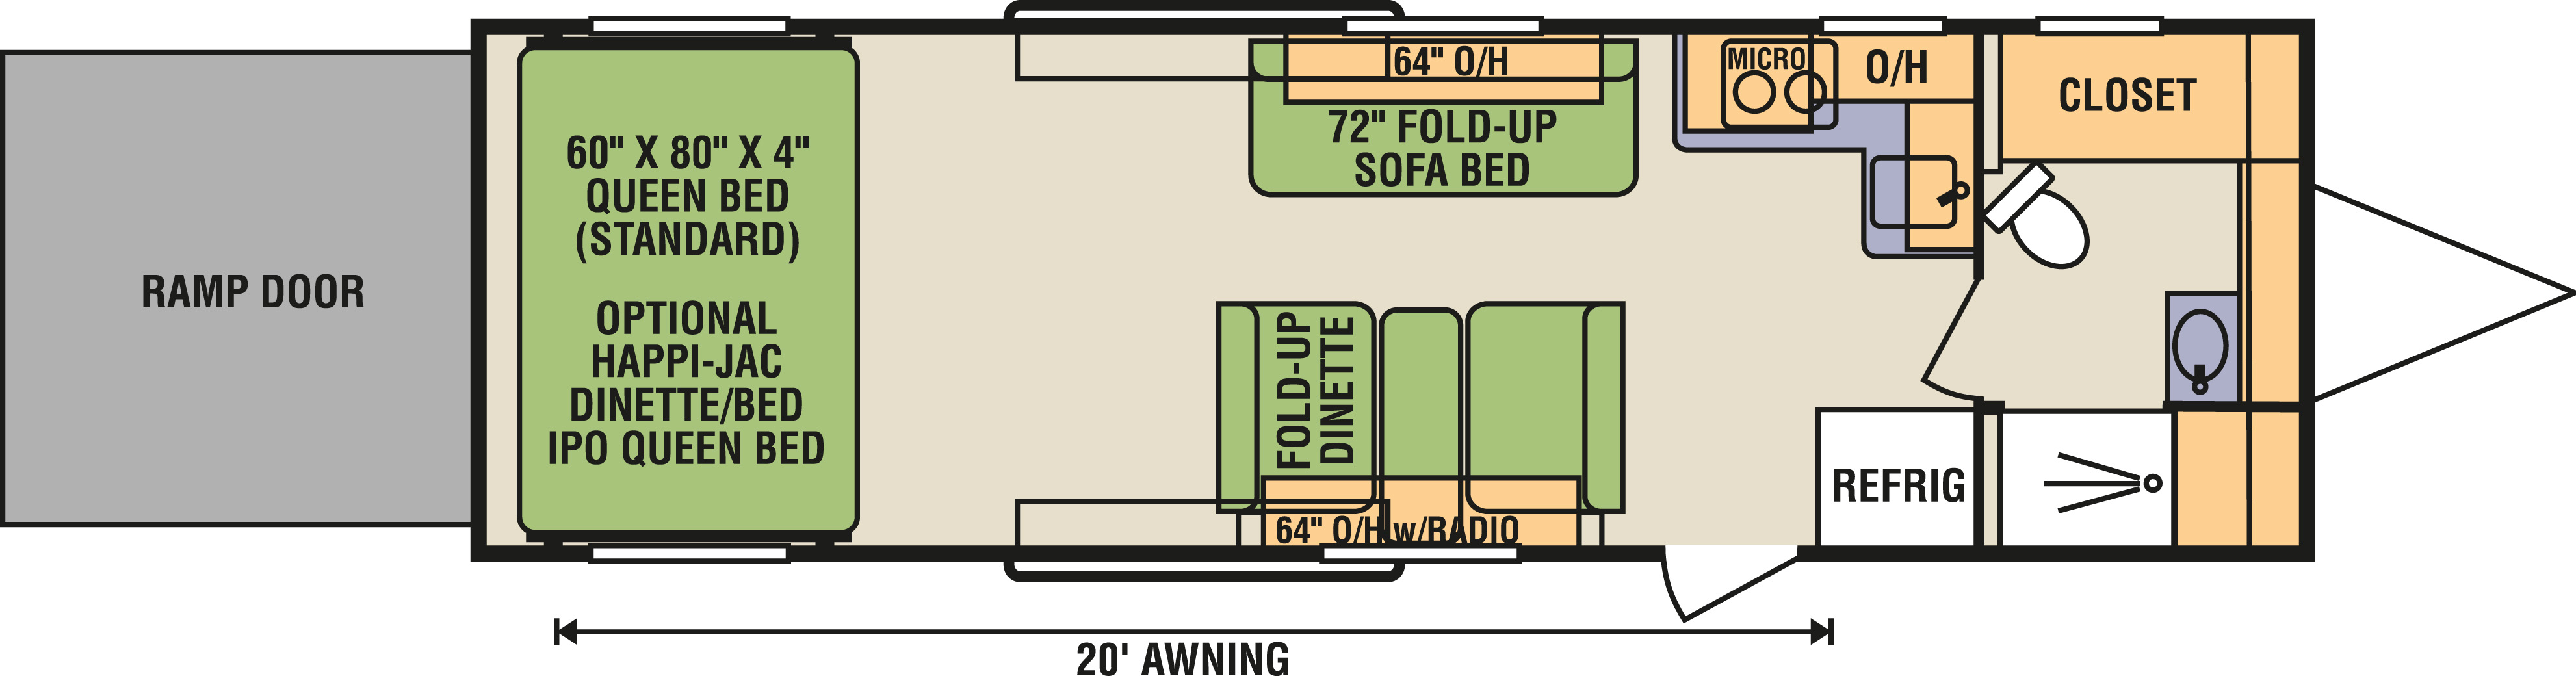 8.5x28FBA - Floorplan